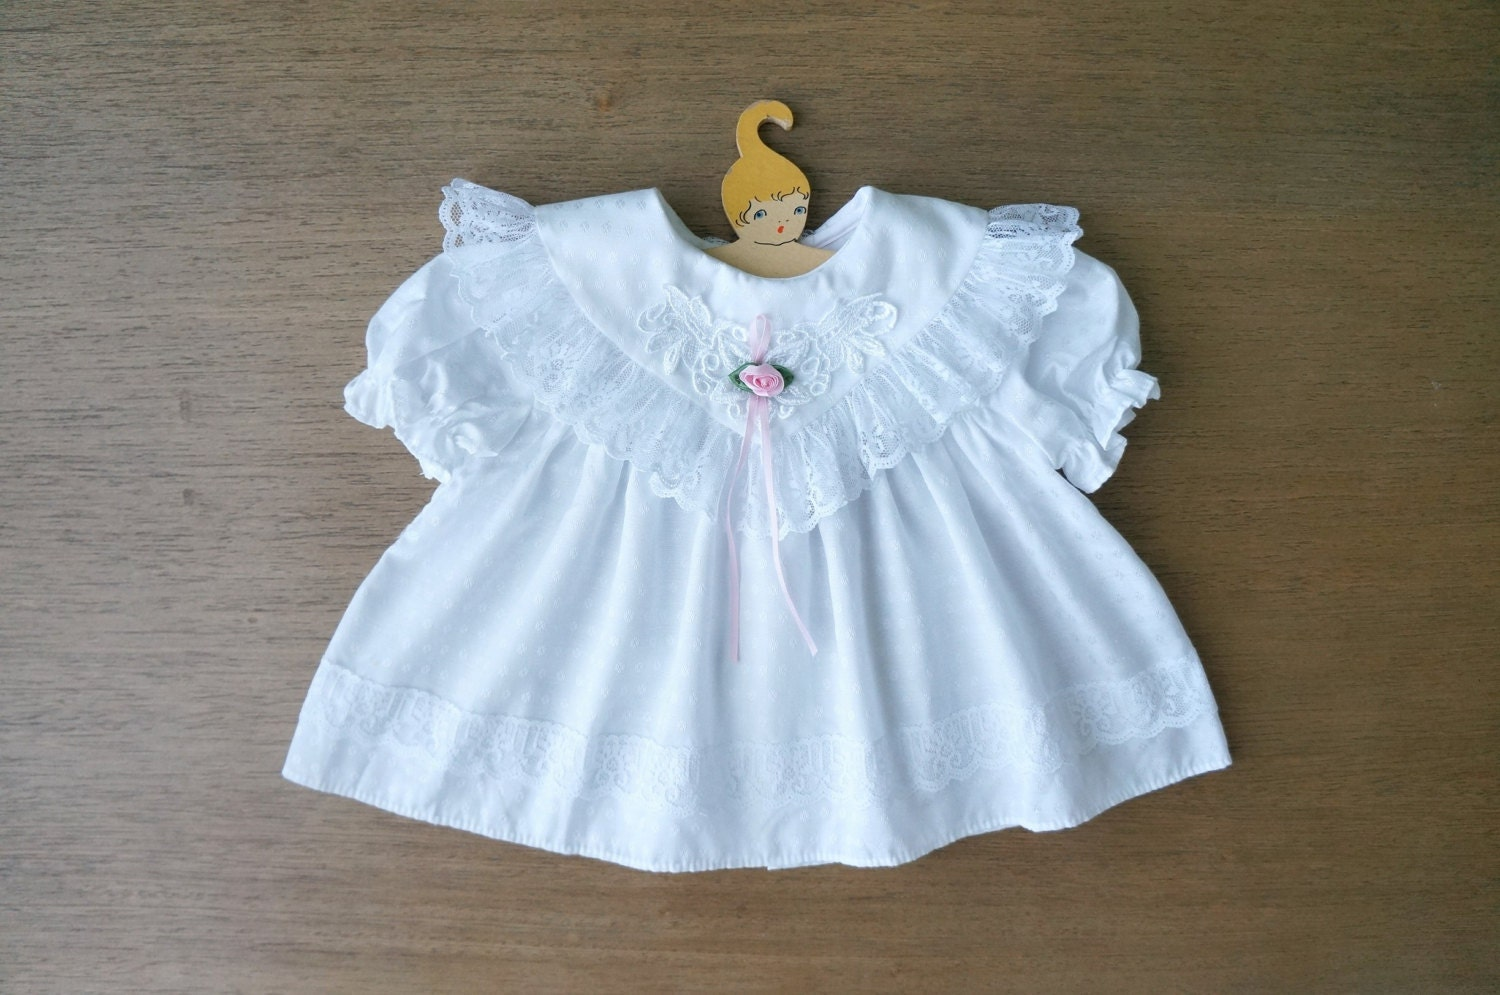 Vintage Baby Clothes Baby Girl White Dolly Lace Ruffle Collar